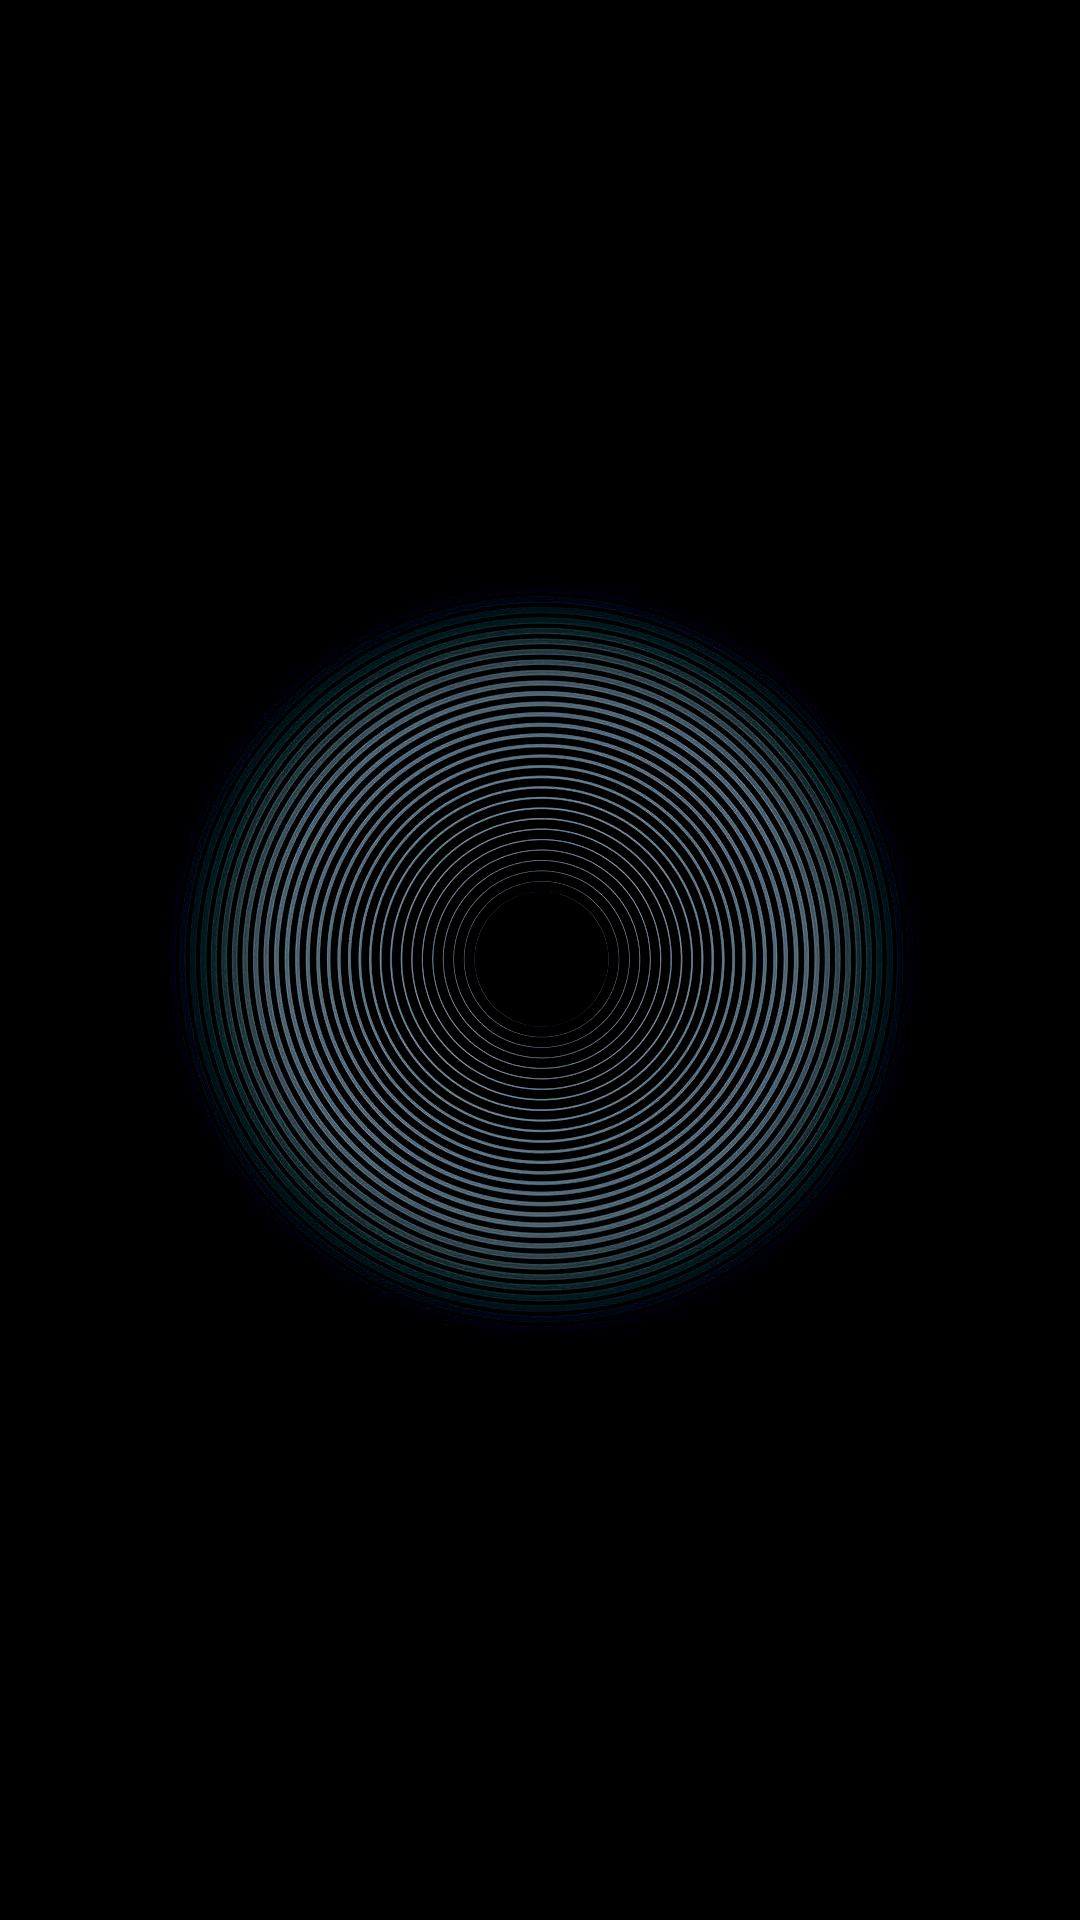 Amoled All Black Wallpapers Wallpaper Cave